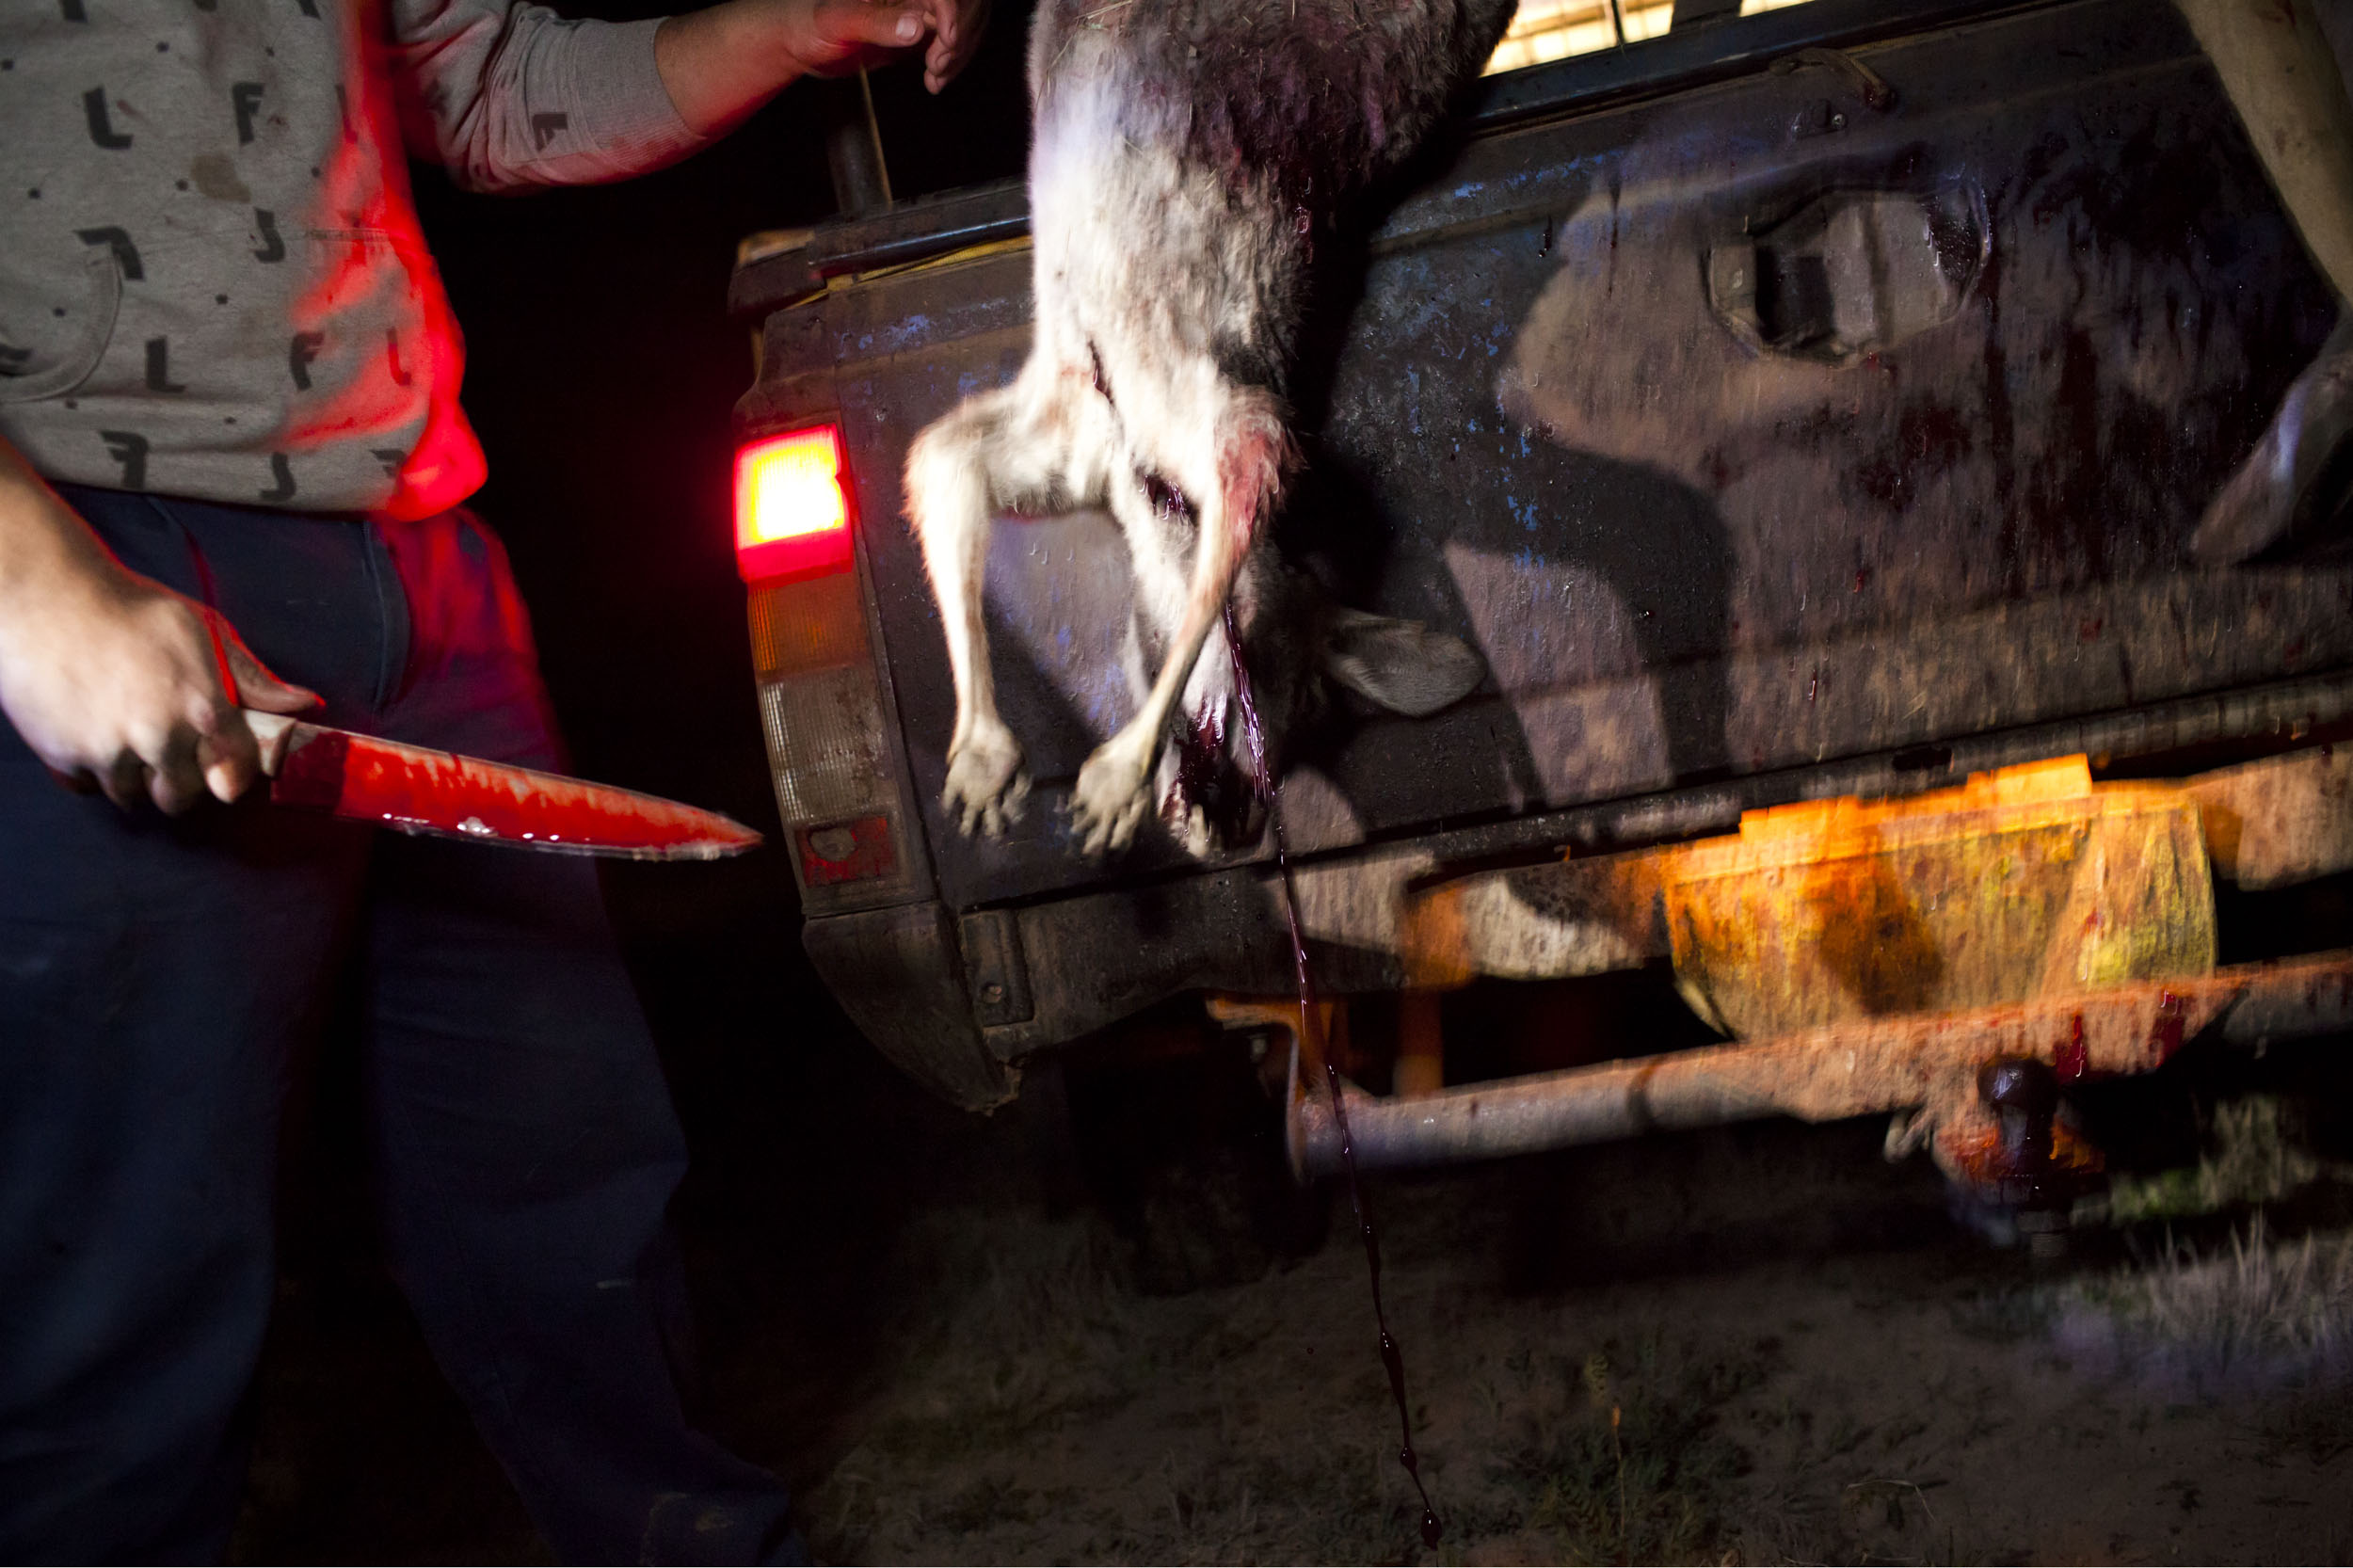 A kangaroo is gutted in the bushland surrounding the Aboriginal community of Wilcannia.